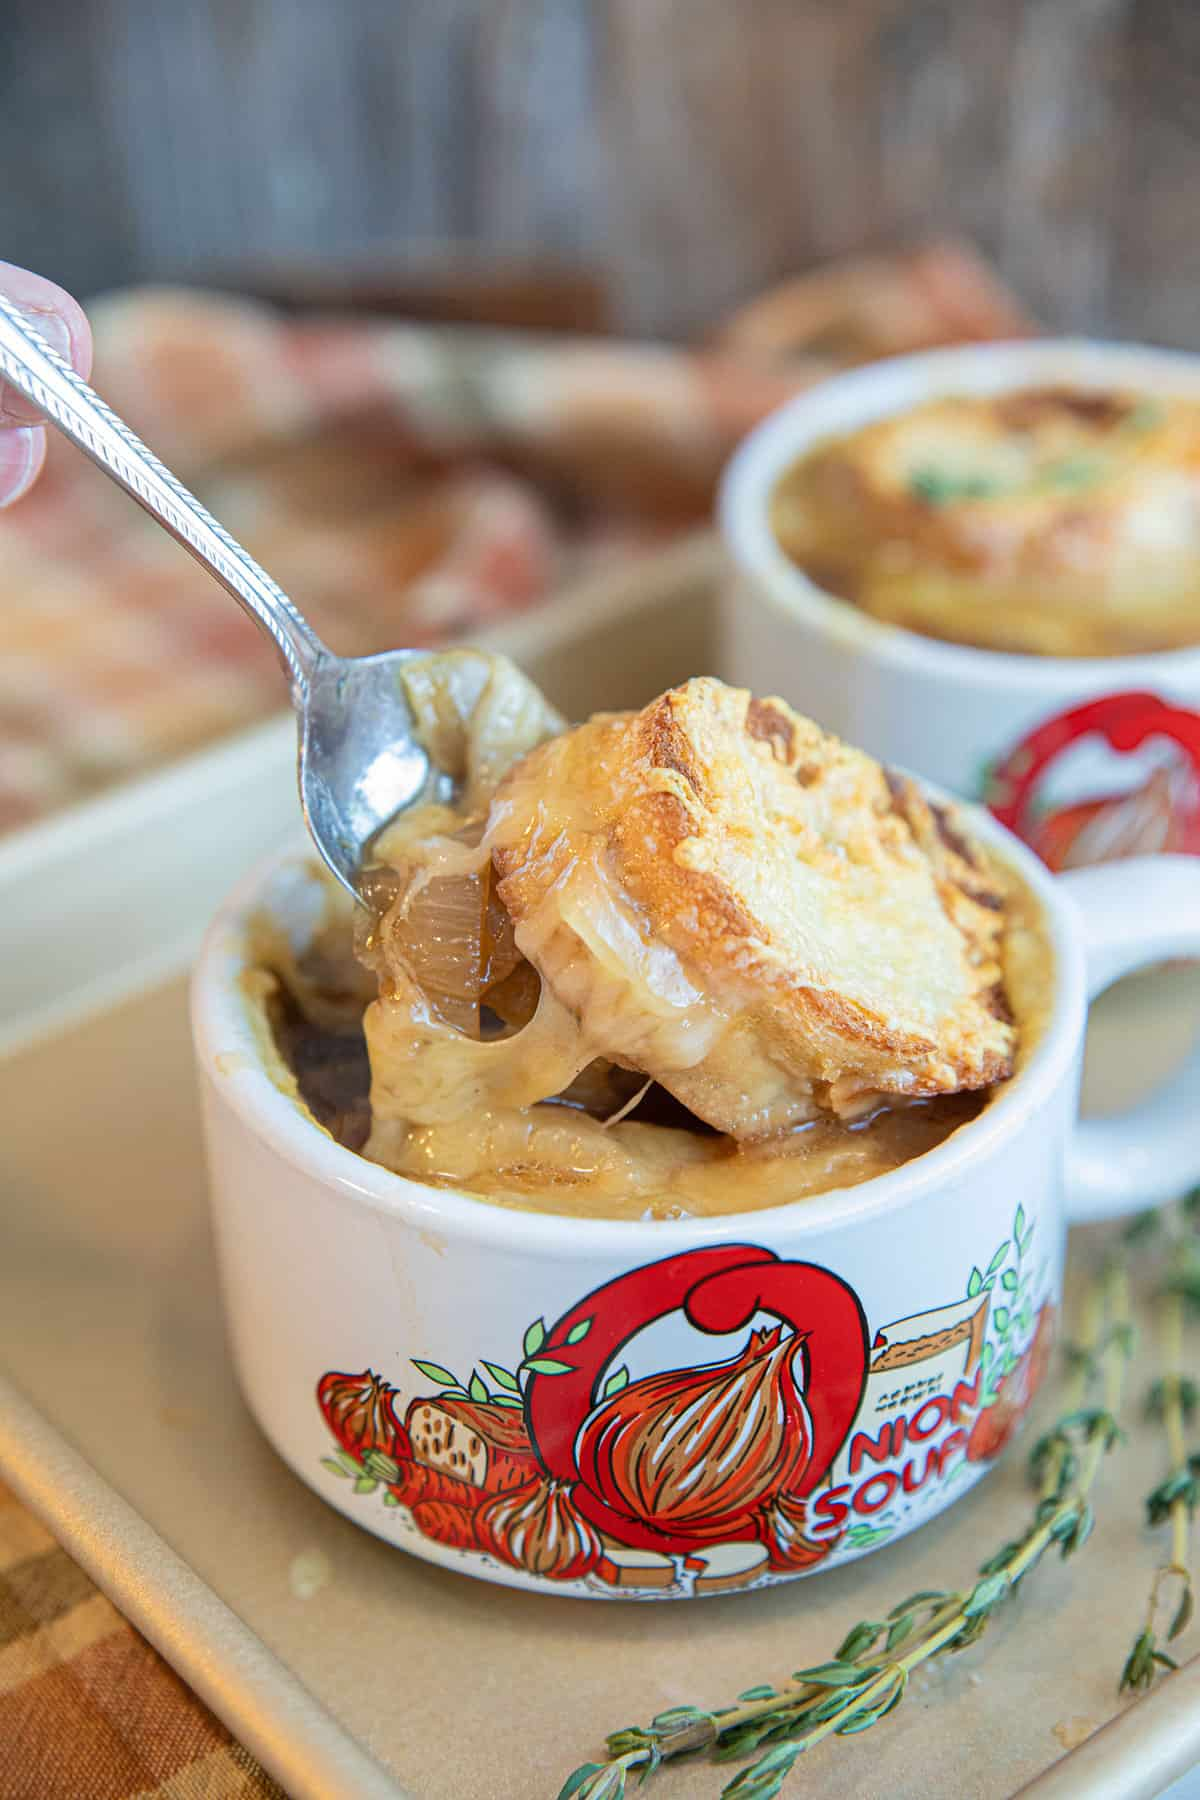 French Onion Soup in a white handled bowl with toasted cheese on top